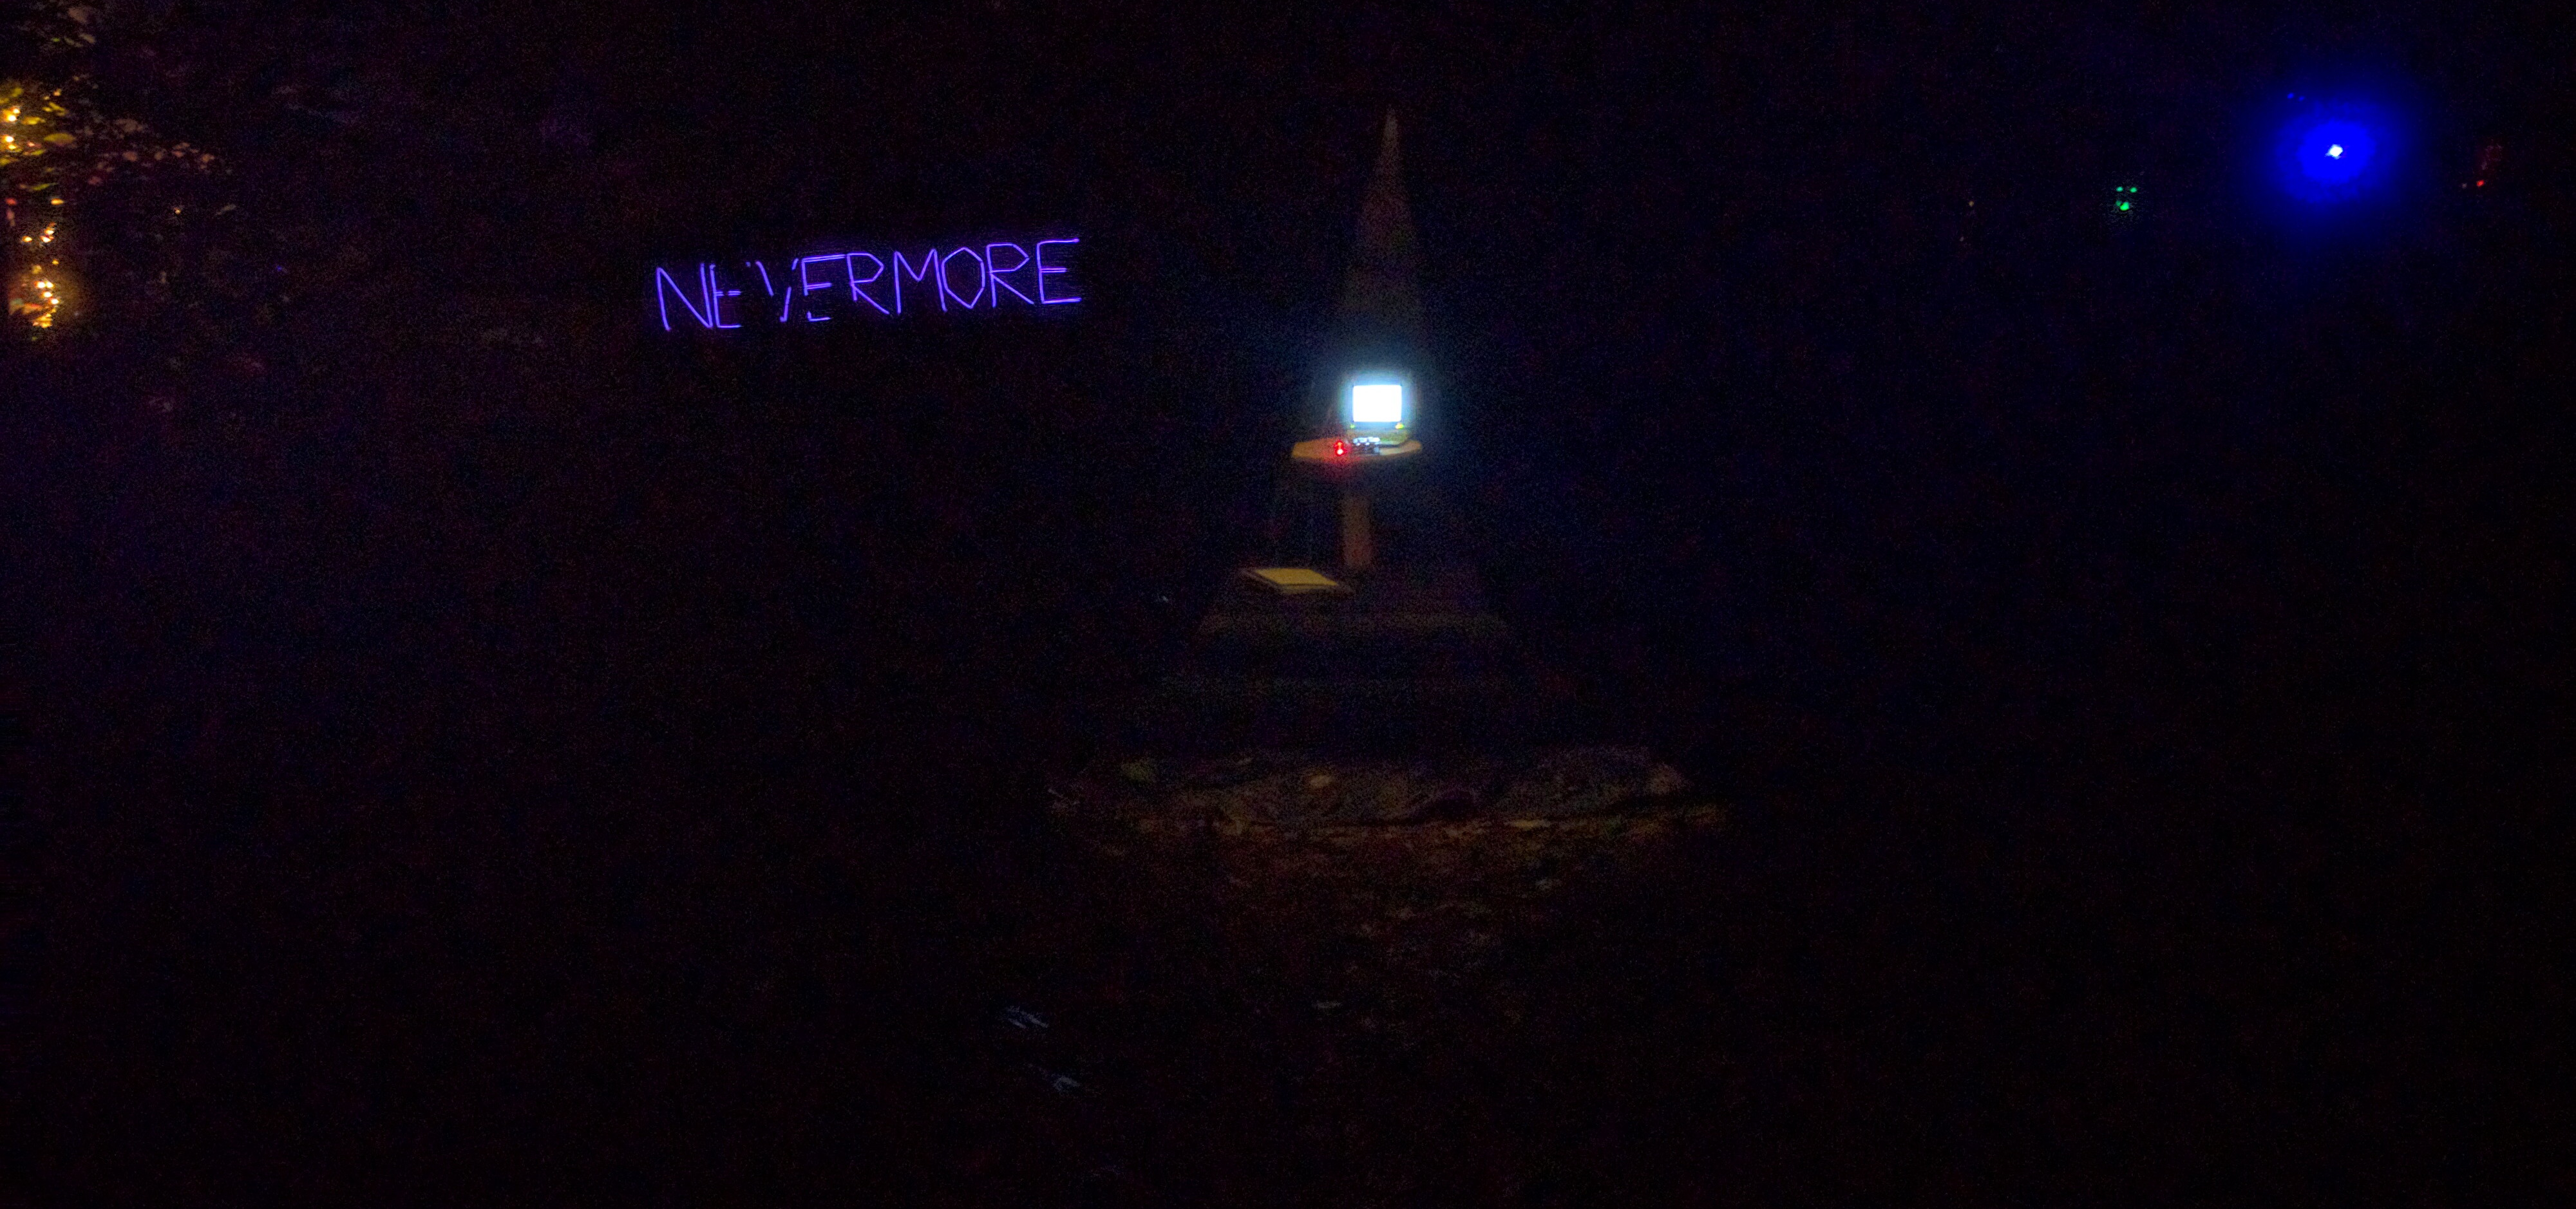 Image of Nevermore at night